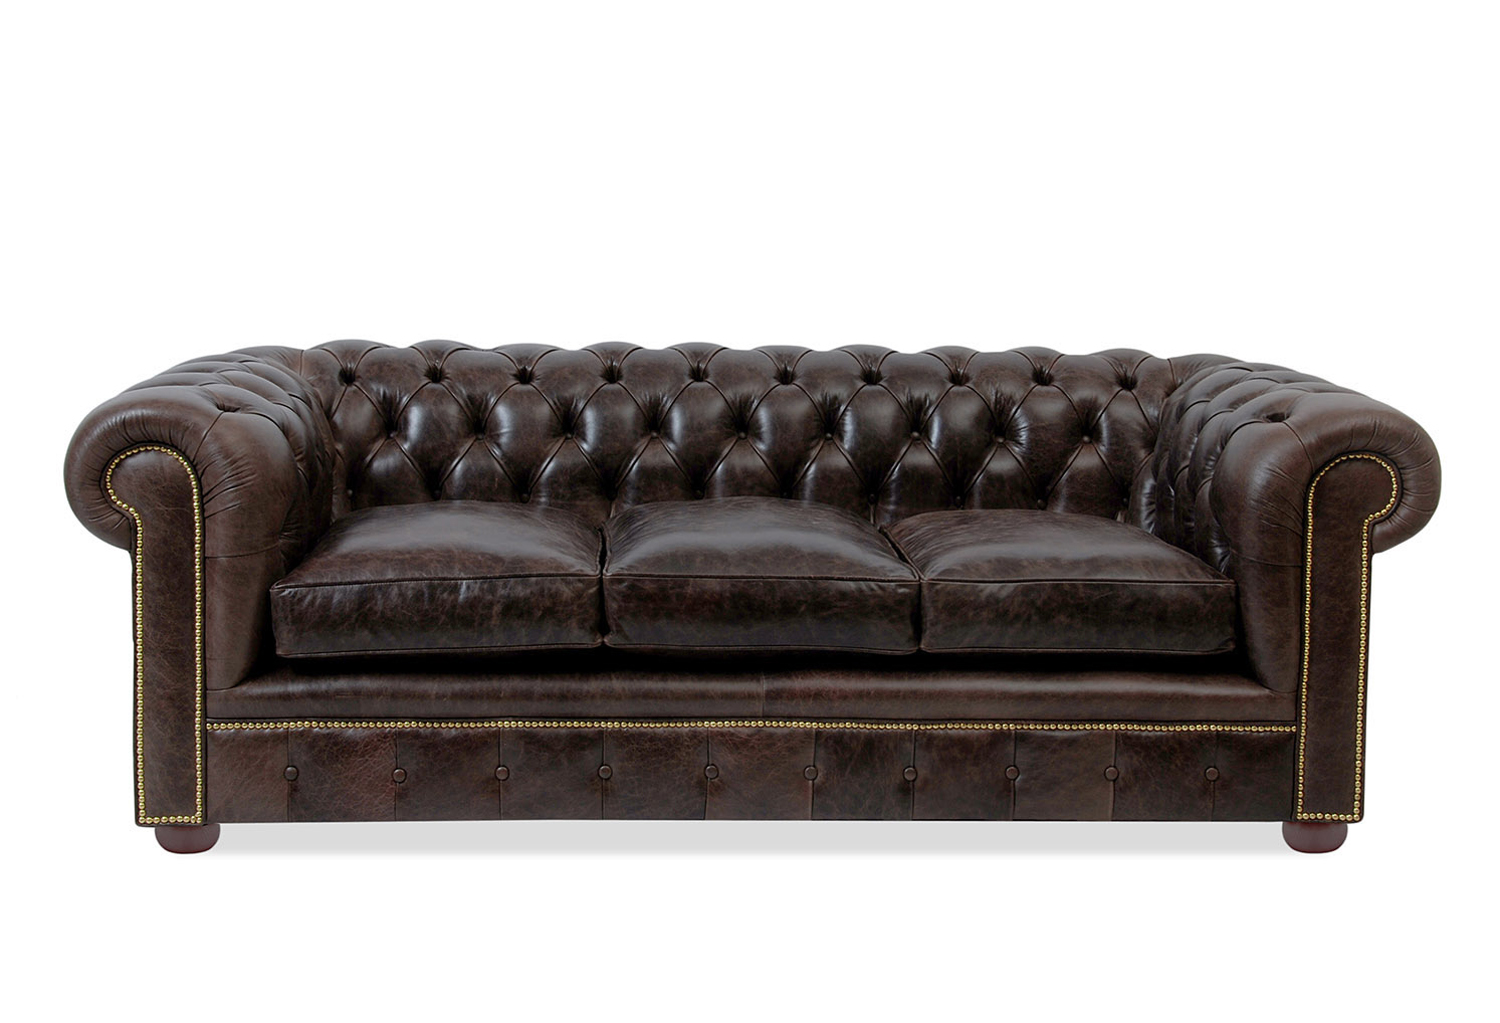 schlafsofa chesterfield bestseller shop f r m bel und einrichtungen. Black Bedroom Furniture Sets. Home Design Ideas